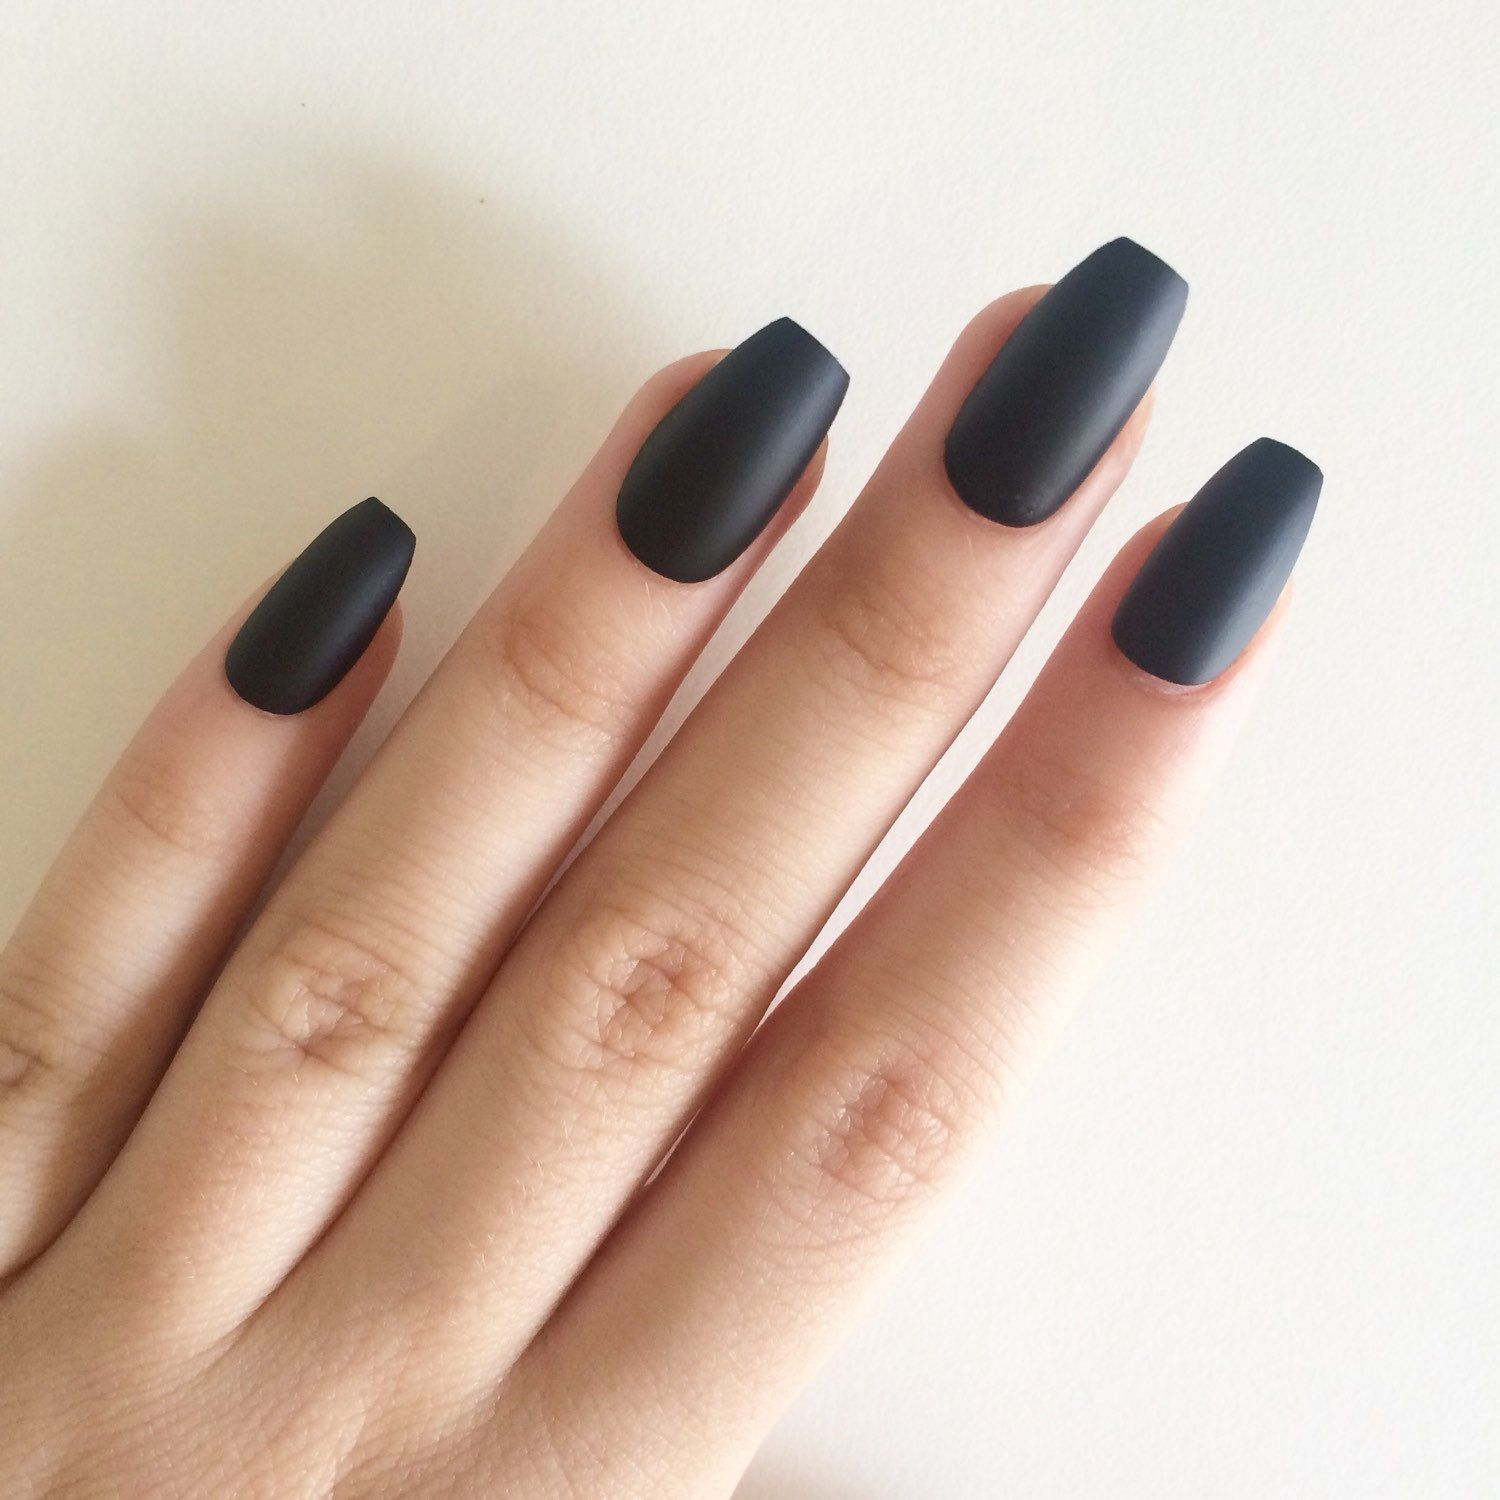 Popular Items For Coffin Nails On Etsy Short Coffin Nails Designs Black Coffin Nails Short Coffin Nails